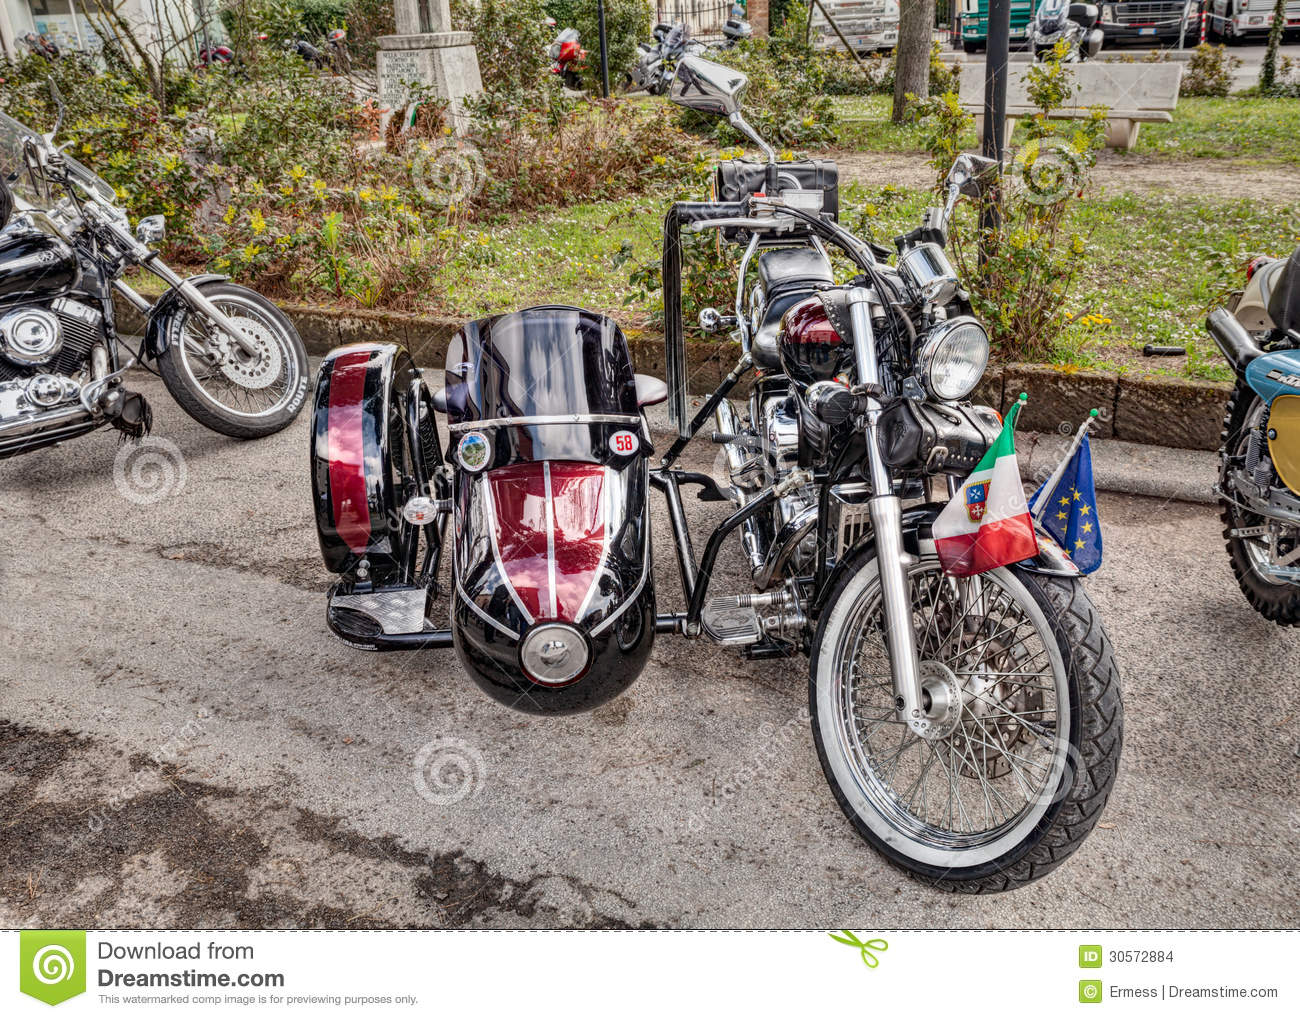 how to add a sidecar to a motorcycle